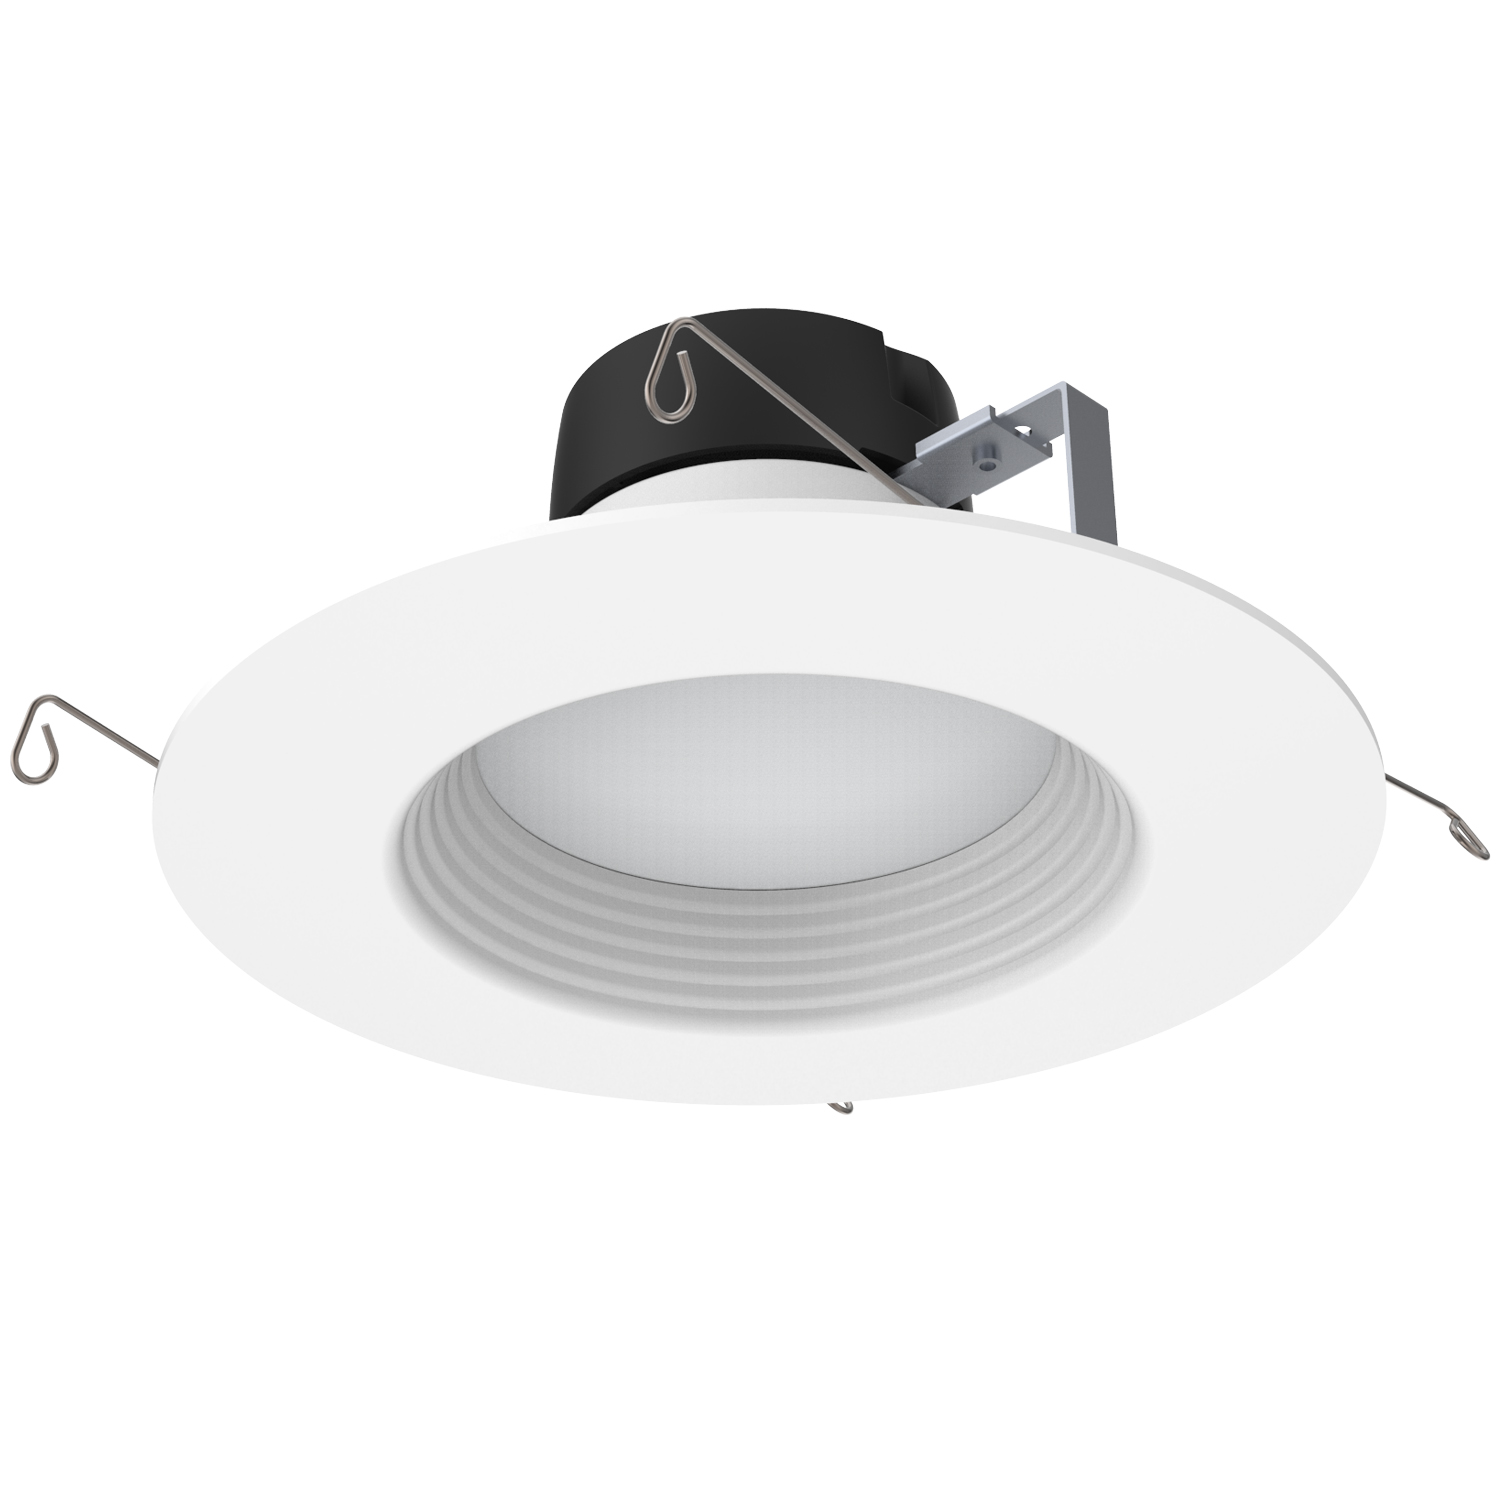 "DL6FR12/930/RT2/LED 99820 5""-6"" LED RETROFIT DOWNLIGHT 12W 3000K DIMMABLE E26 REPLACEABLE-WHITE TRIM-WHITE BAFFLE"